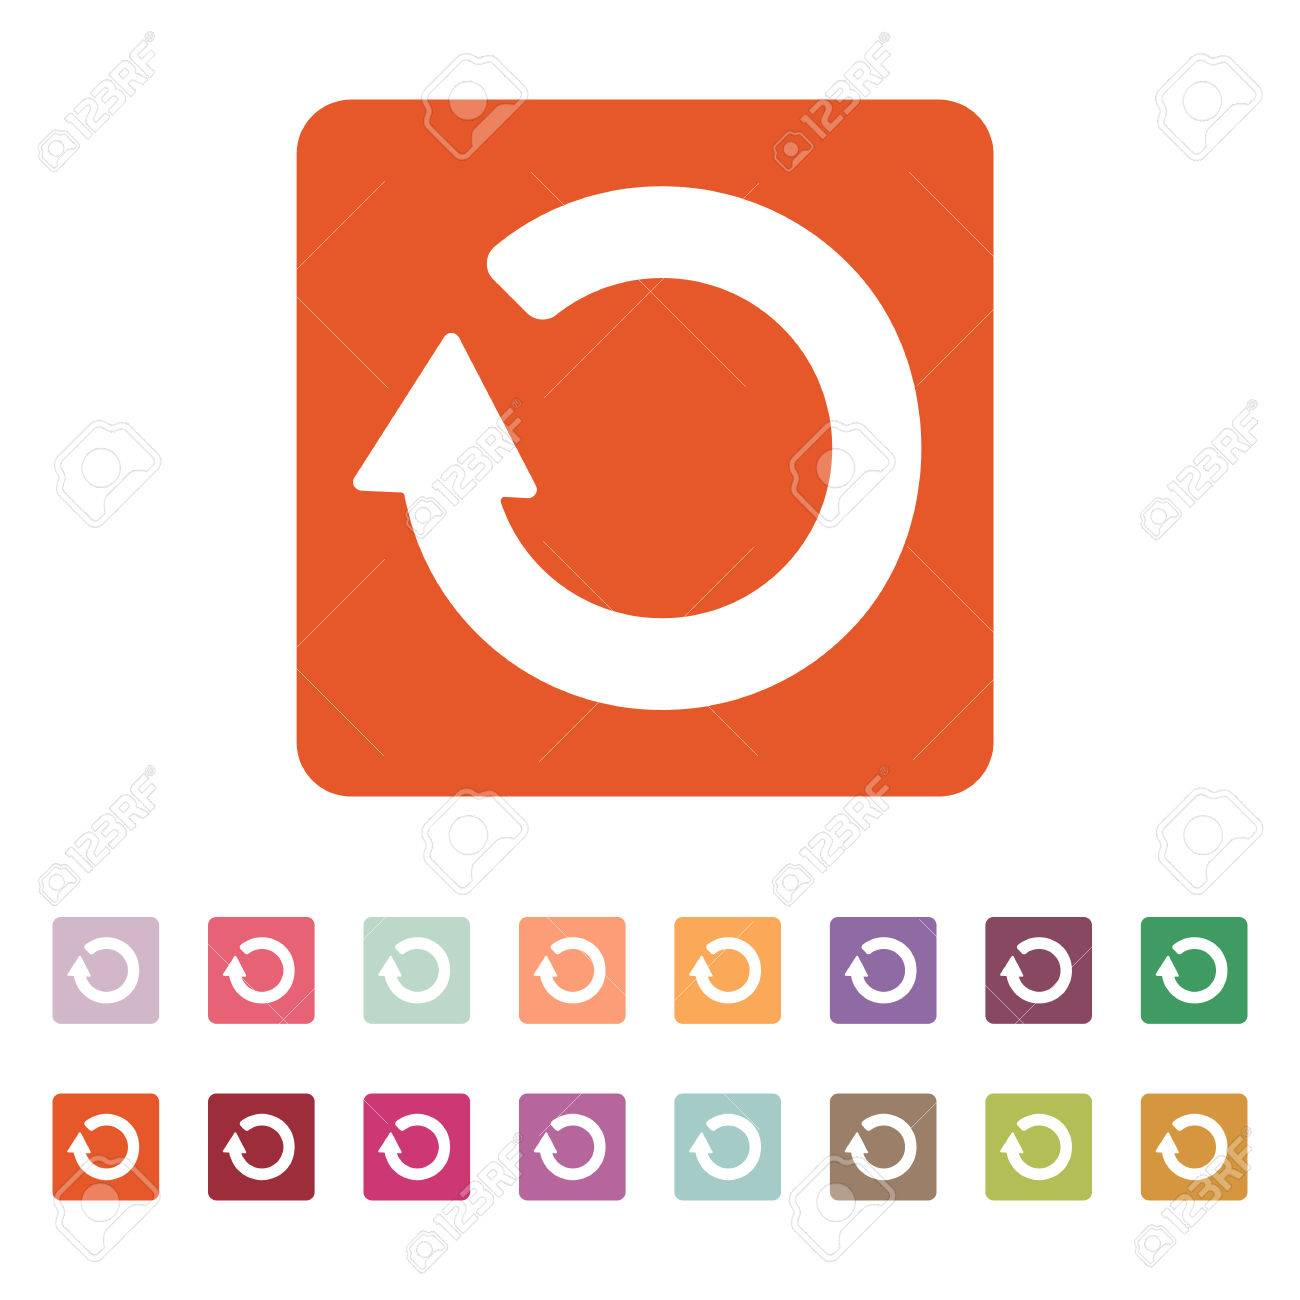 The refresh icon loading symbol flat vector illustration button loading symbol flat vector illustration button set stock vector biocorpaavc Image collections